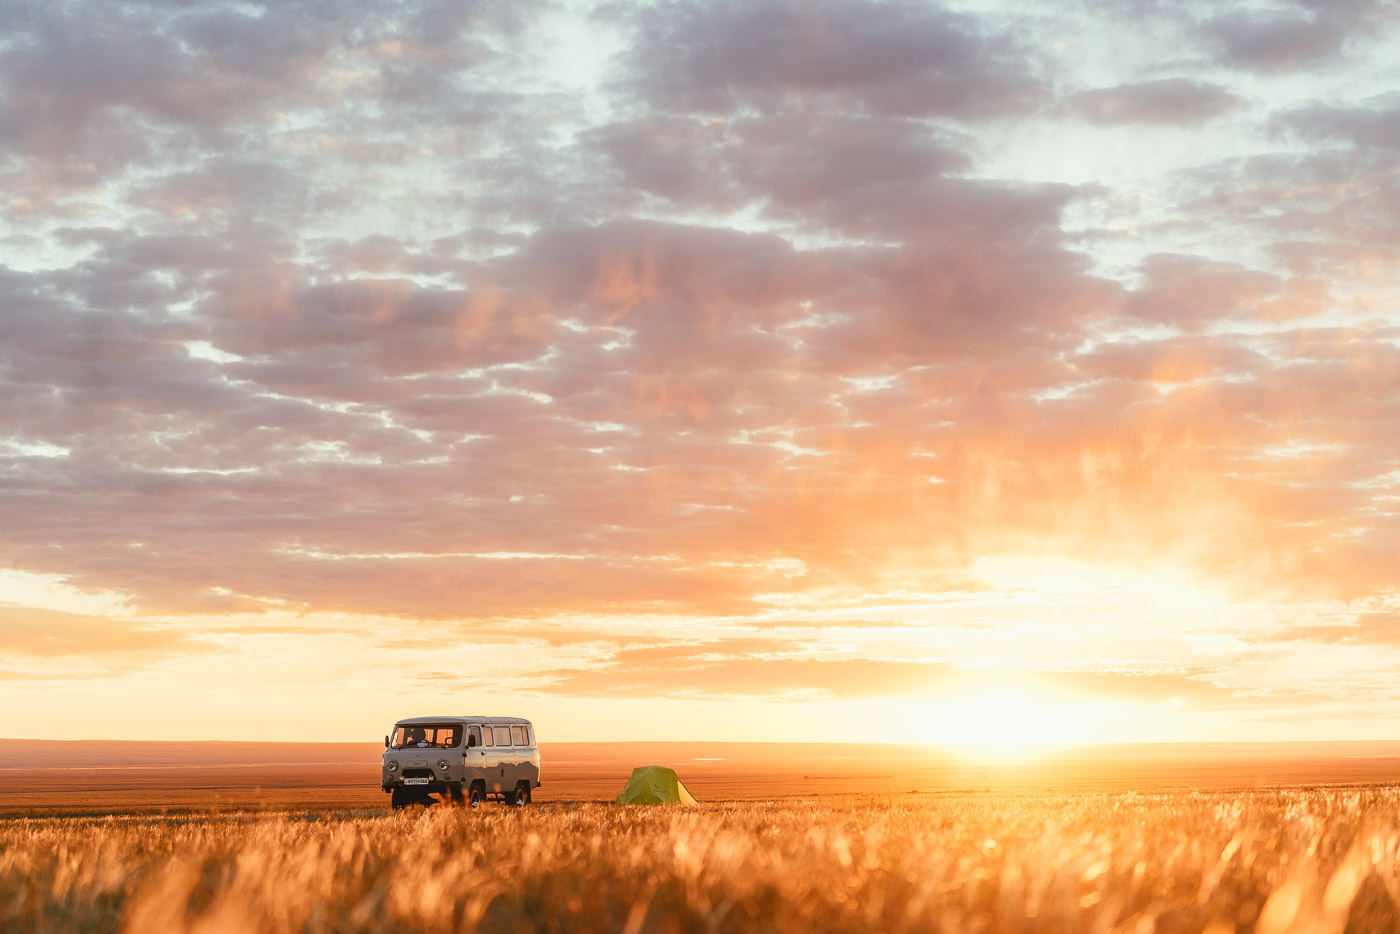 sunrise over the van and tent in Mongolia